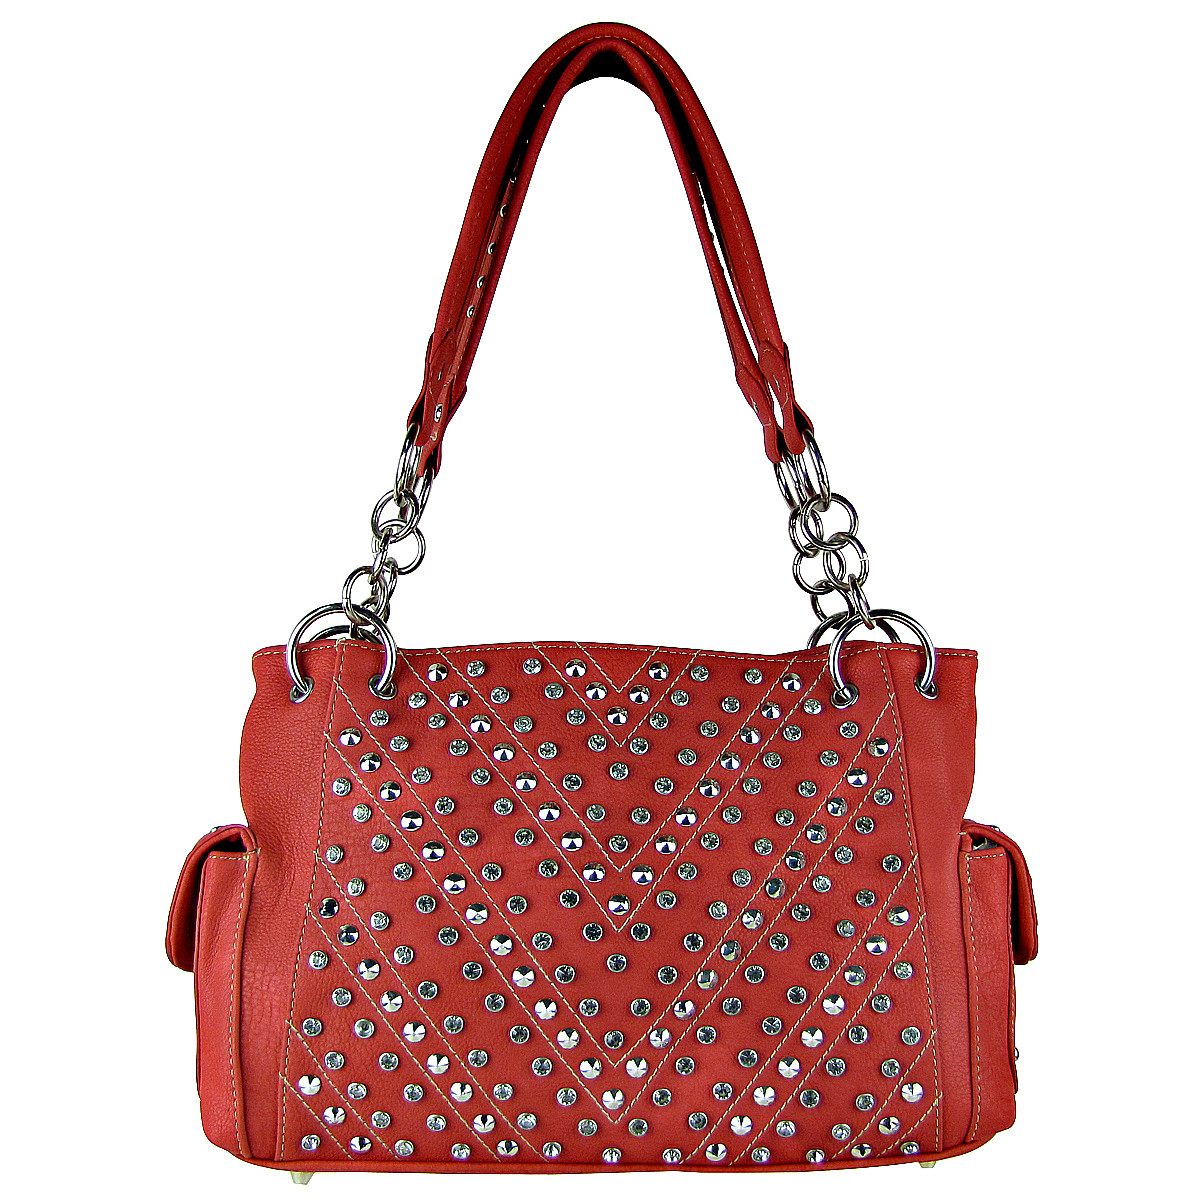 PINK RHINESTONE STUDDED LEATHERETTE LOOK SHOULDER HANDBAG HB1-12480PNK